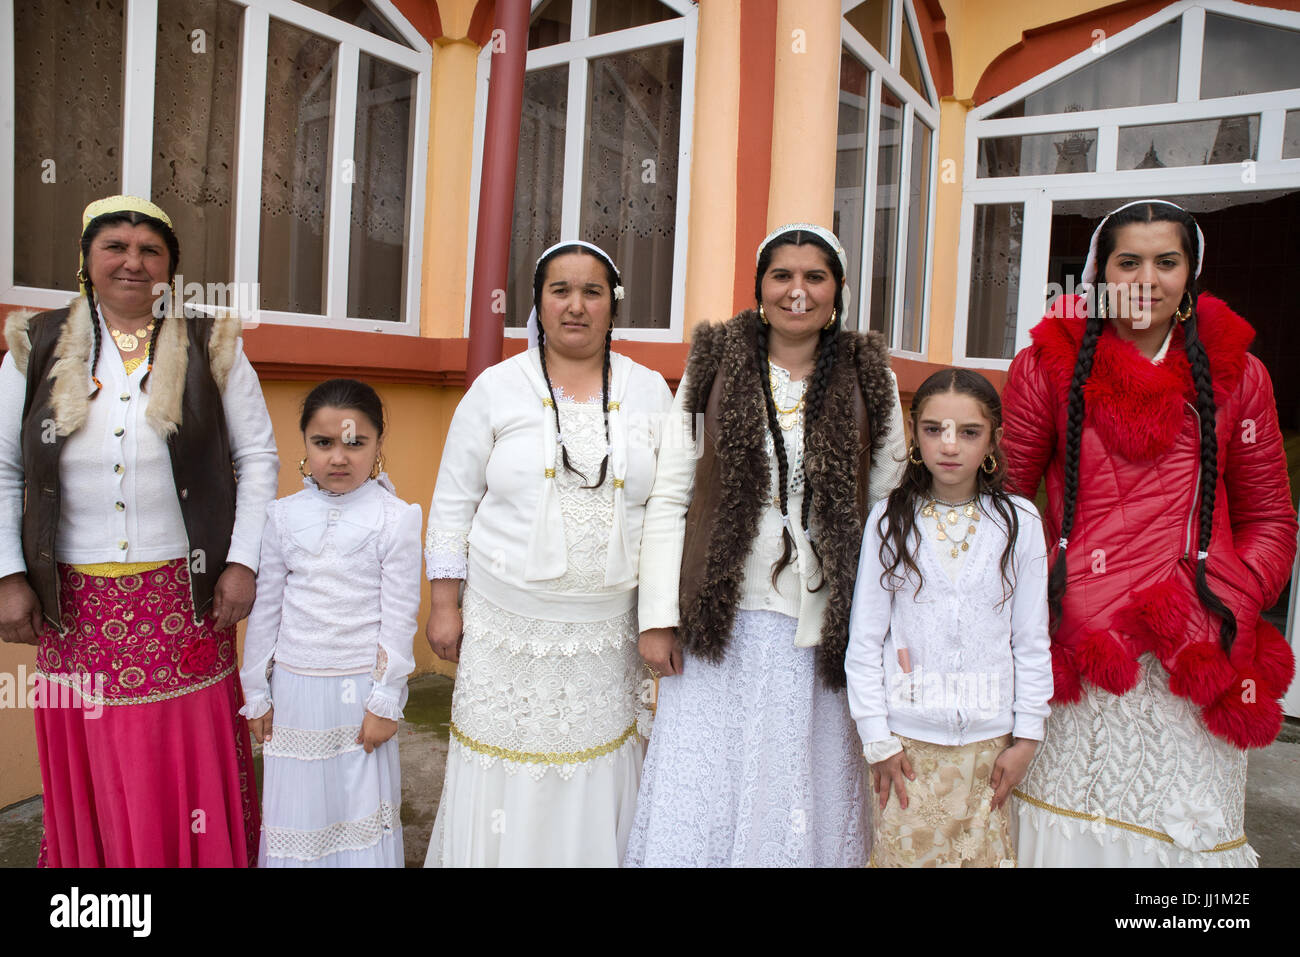 Women and girls of a Rom wealthy family in front of their luxury house, Ivanesti, Romania - Stock Image